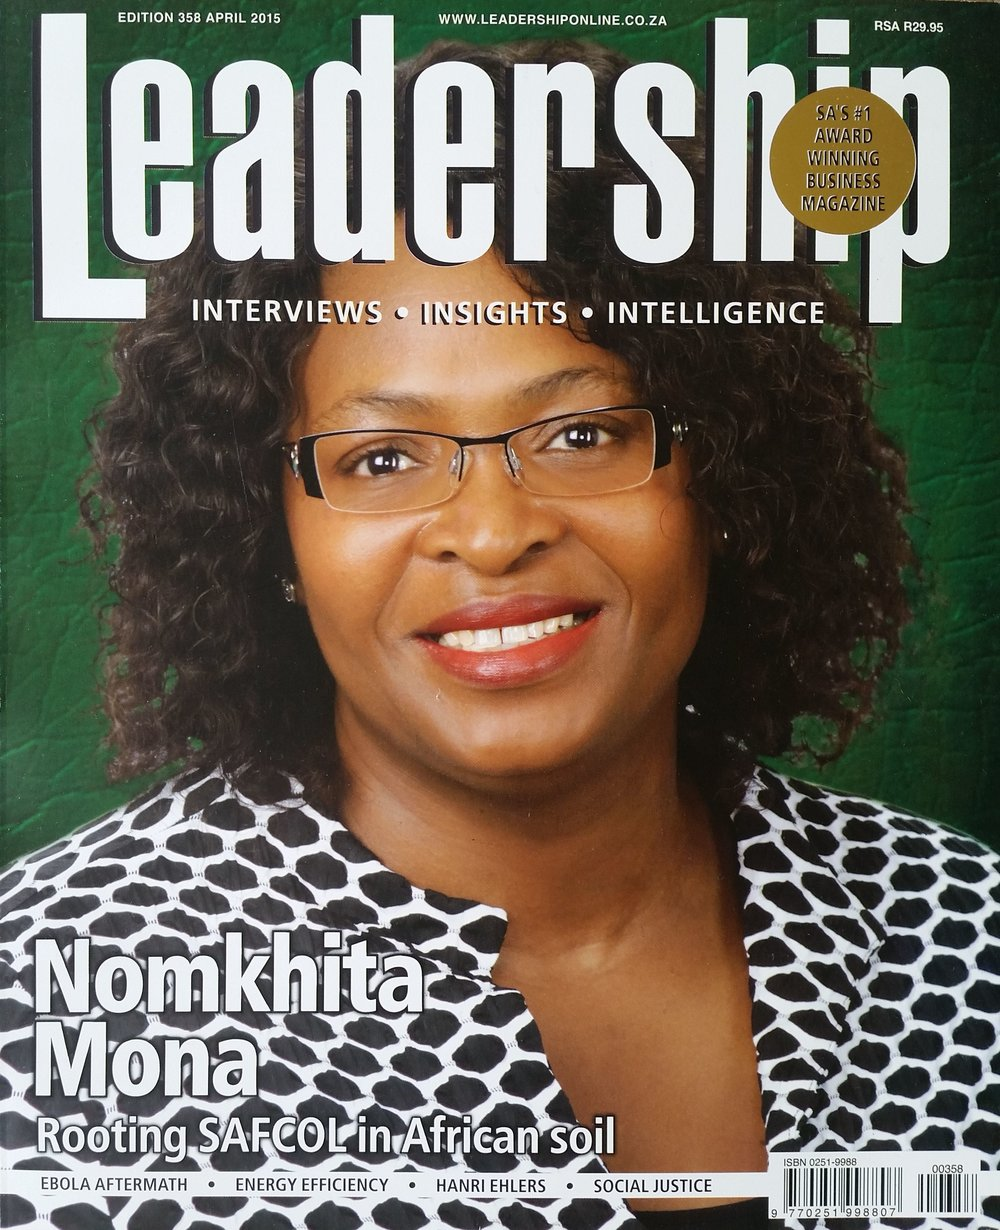 Leadership magazine LIO global nadia read thaele